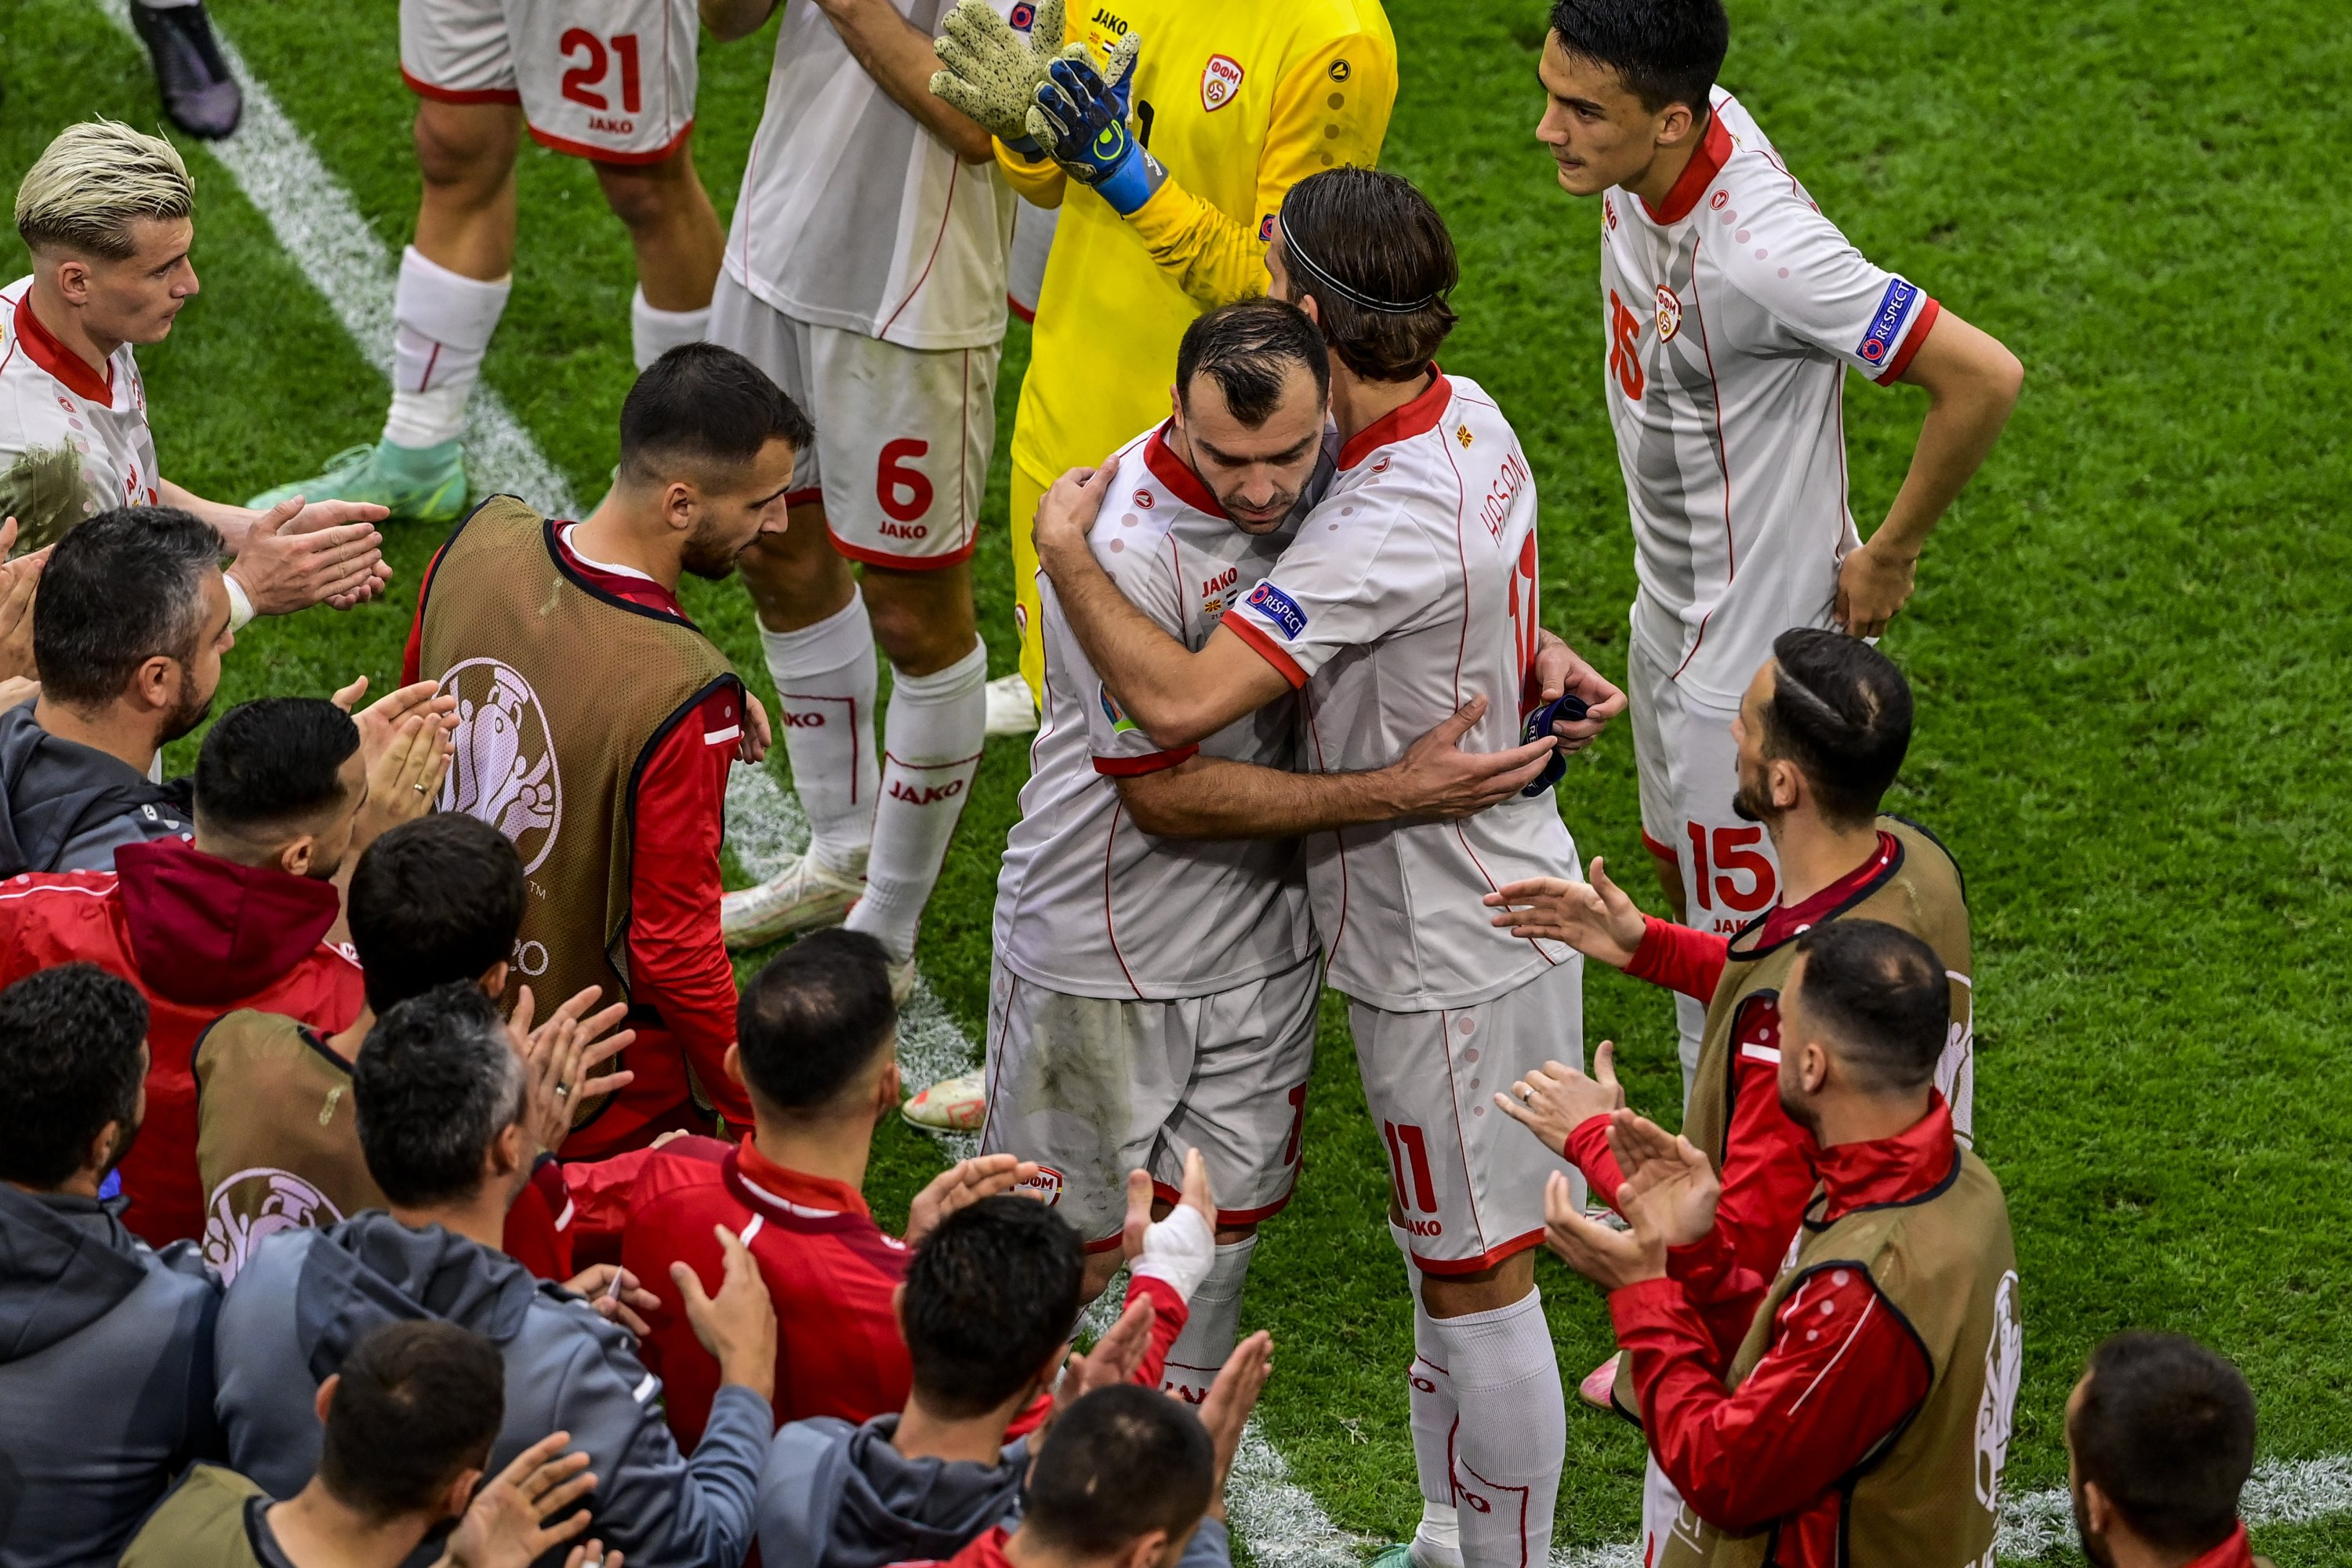 North Macedonia's Goran Pandev (C) leaves the pitch while applauded and embraced by teammates during the UEFA Euro 2020 Group C match against the Netherlands at Johan Cruijff Arena in Amsterdam, Netherlands, June 21, 2021. (AP Photo/Olaf Kraak/Pool)